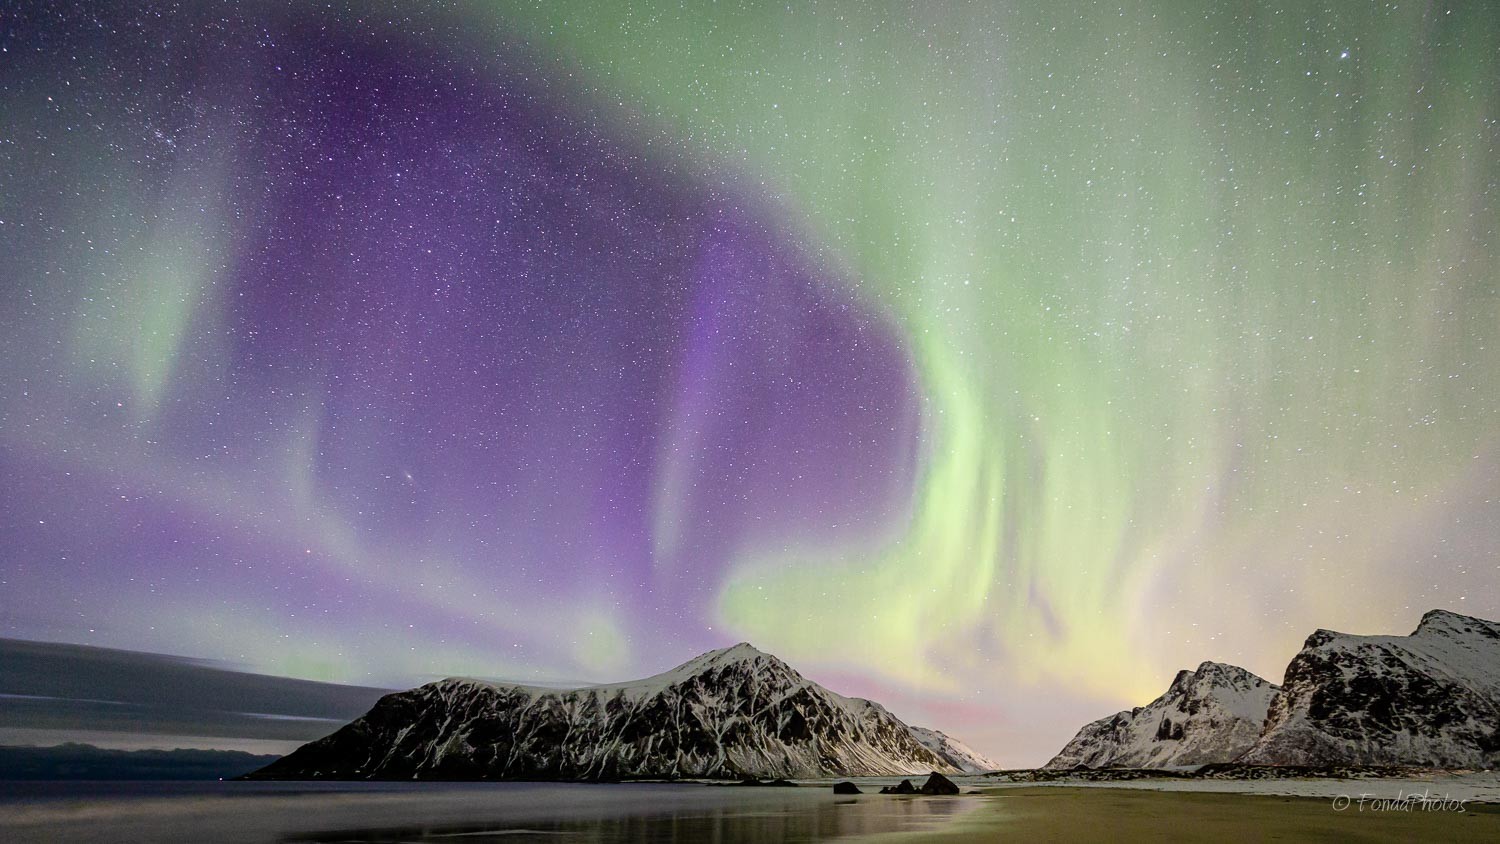 Northern lights, Skagsanden beach, Lofoten